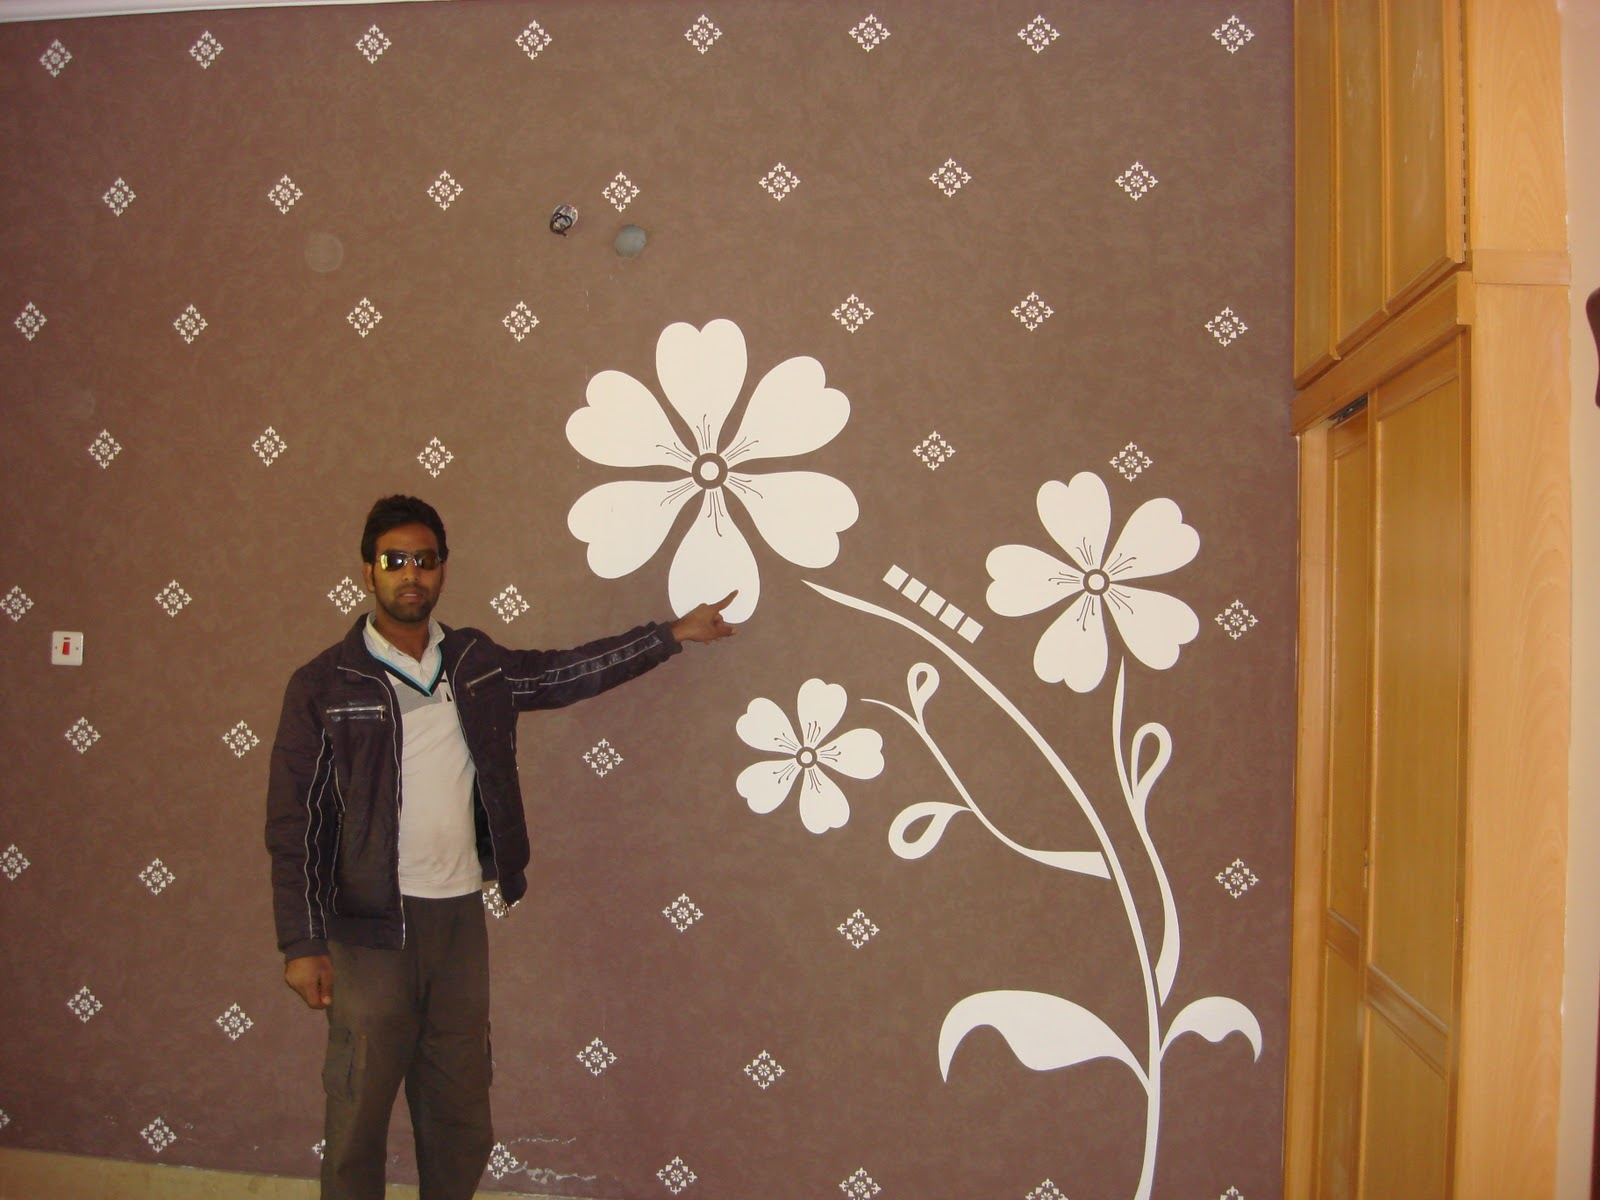 Bedroom Paint Ideas In Pakistan arslan paints okara: amazing walls desgins in okara pakistan